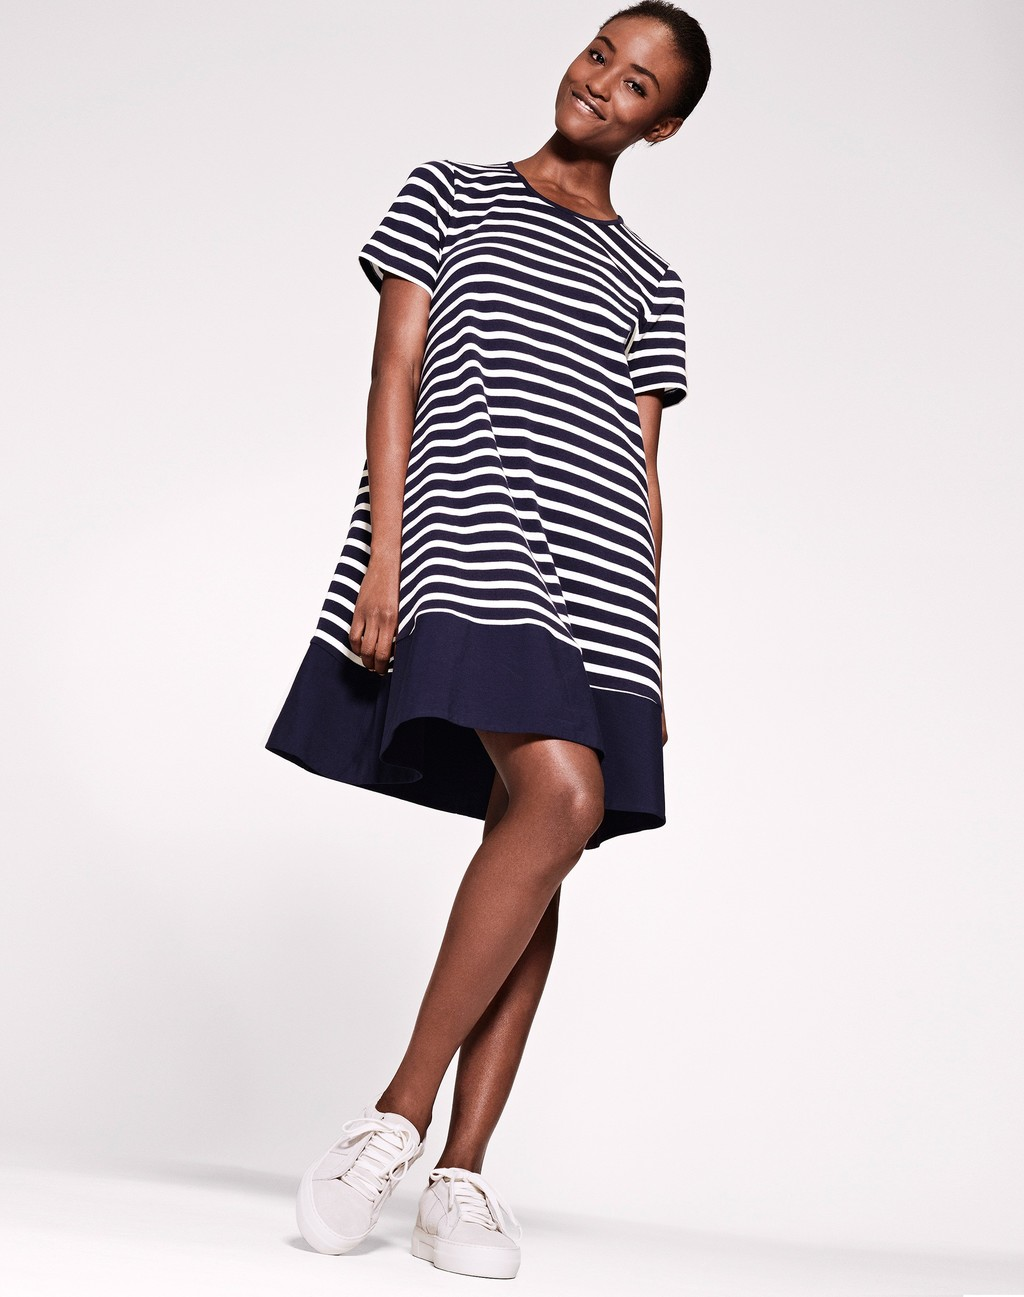 Woven Mix Swing Dress Navy/White Stripe - style: trapeze; fit: loose; pattern: horizontal stripes; secondary colour: white; predominant colour: navy; occasions: casual; length: just above the knee; fibres: cotton - 100%; neckline: crew; sleeve length: short sleeve; sleeve style: standard; pattern type: fabric; texture group: woven light midweight; multicoloured: multicoloured; season: s/s 2016; wardrobe: basic